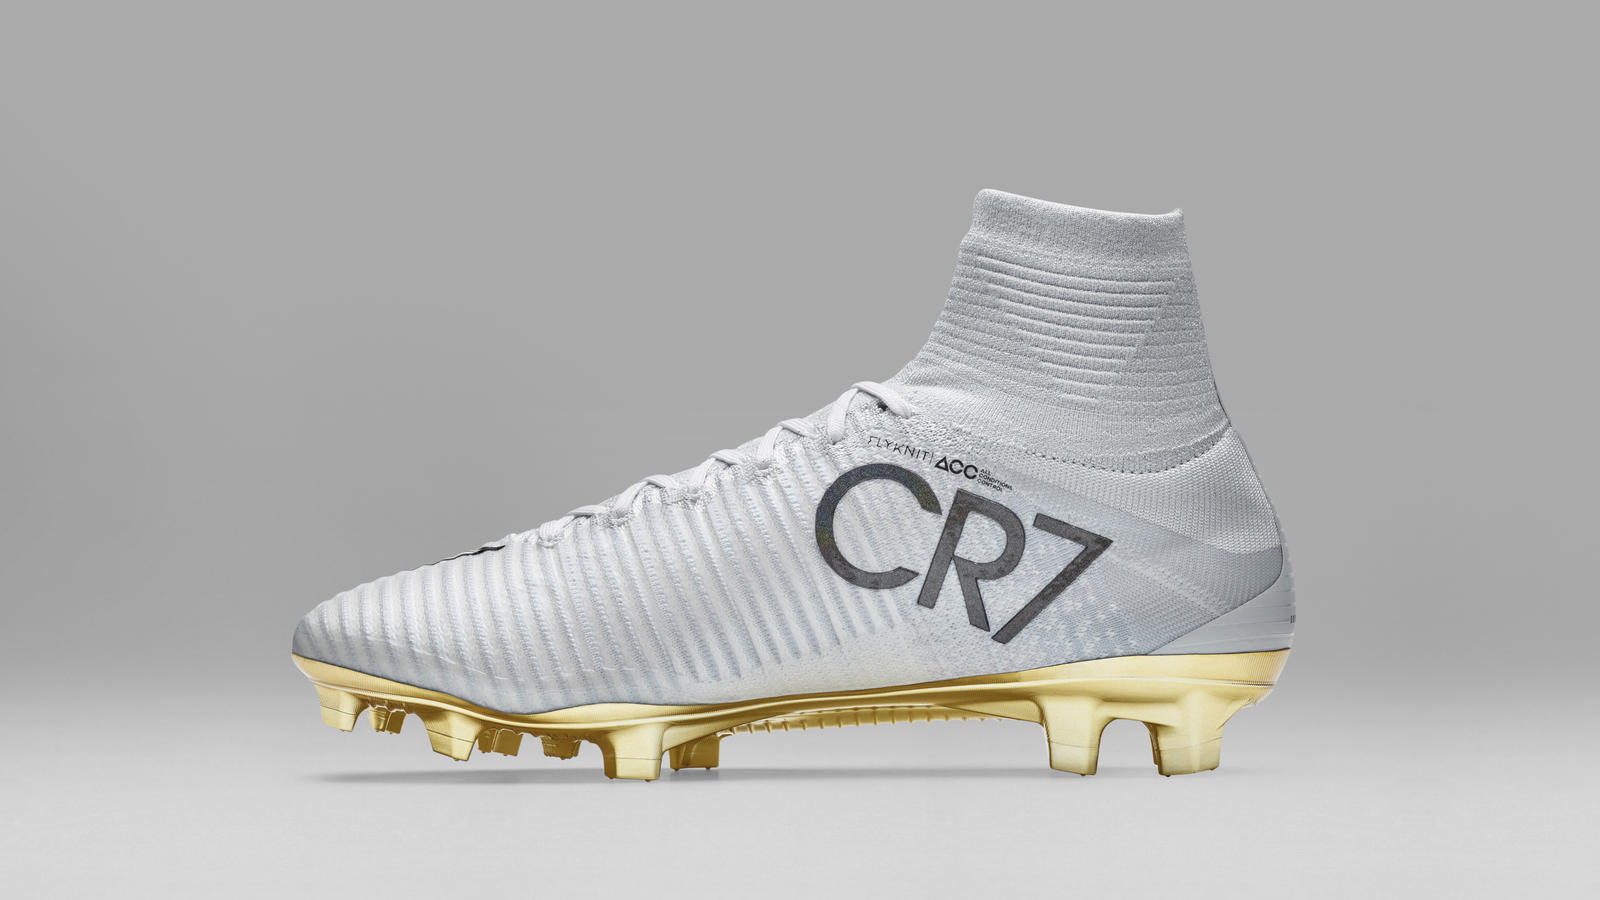 nike pays tribute to cristiano ronaldo s tremendous year with limited edition mercurial superfly